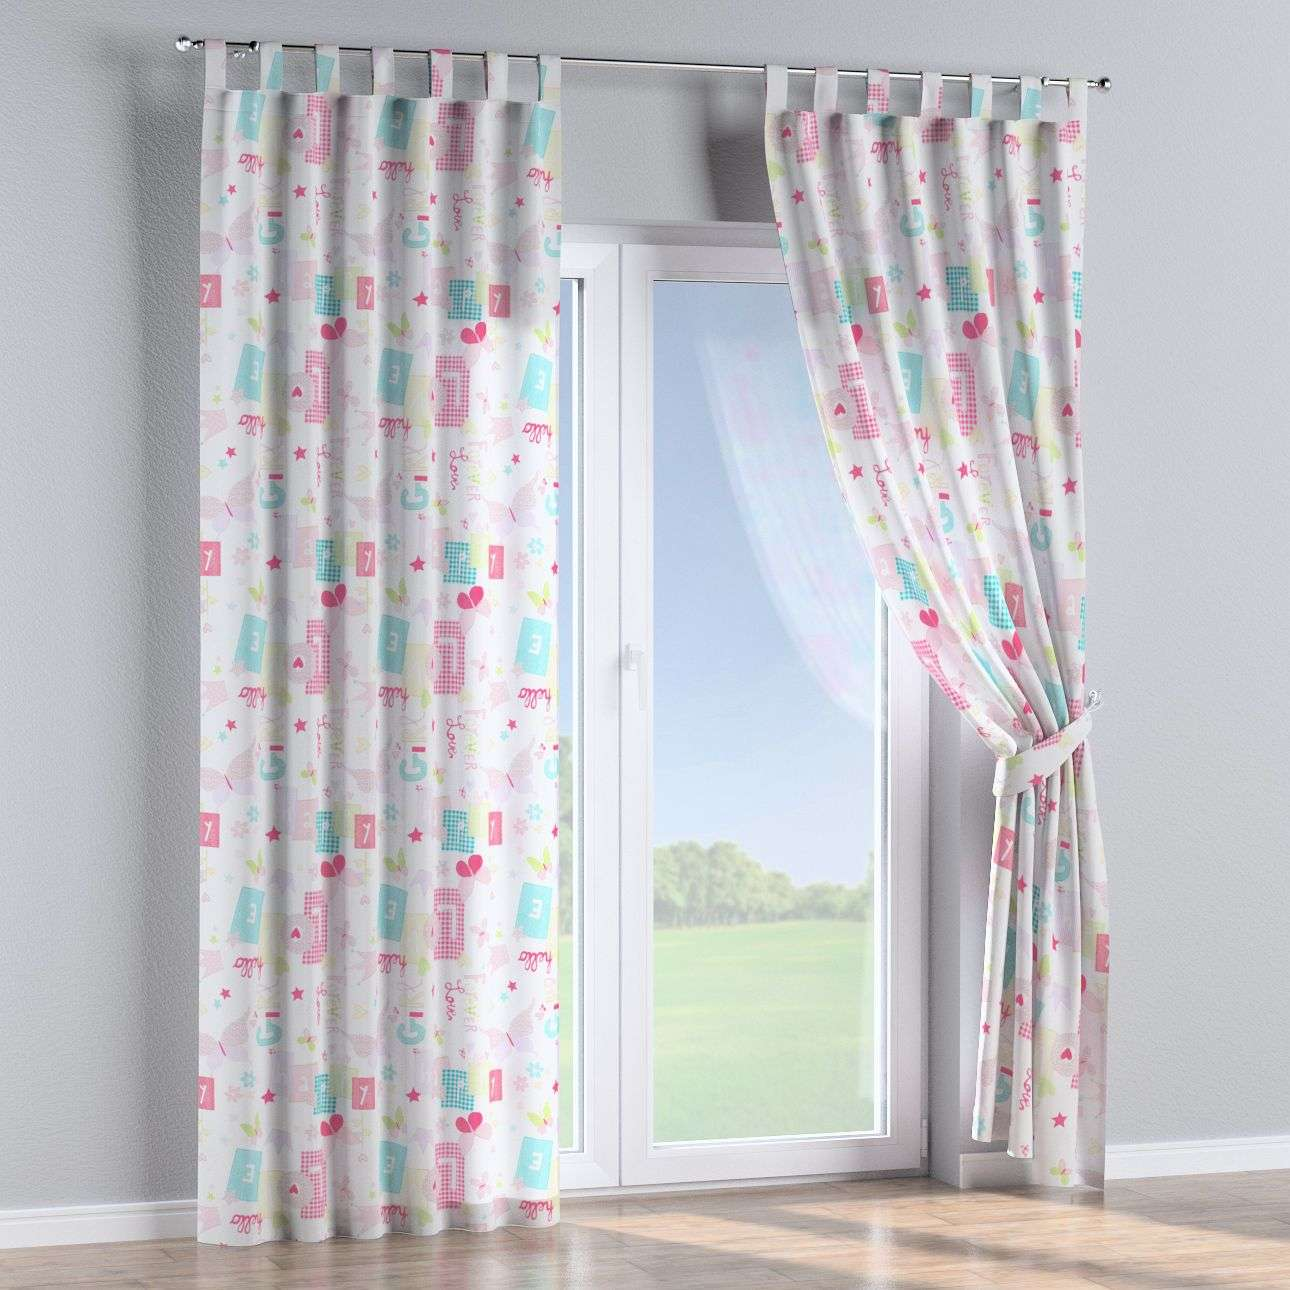 Tab top curtains in collection Little World, fabric: 141-51